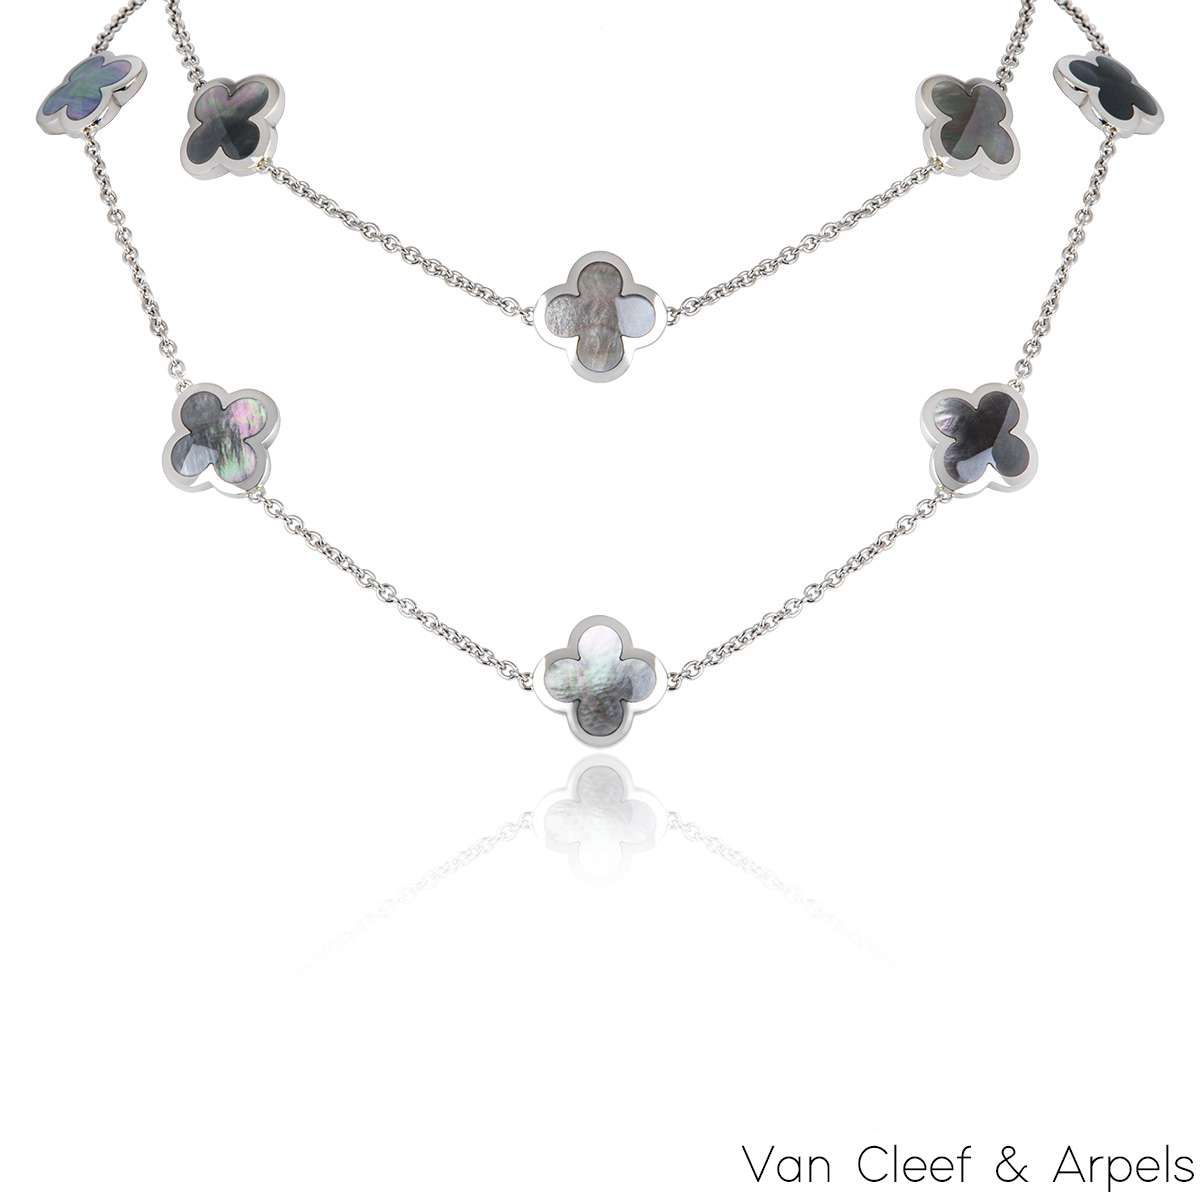 Van Cleef & Arpels White Gold Pure Alhambra Necklace